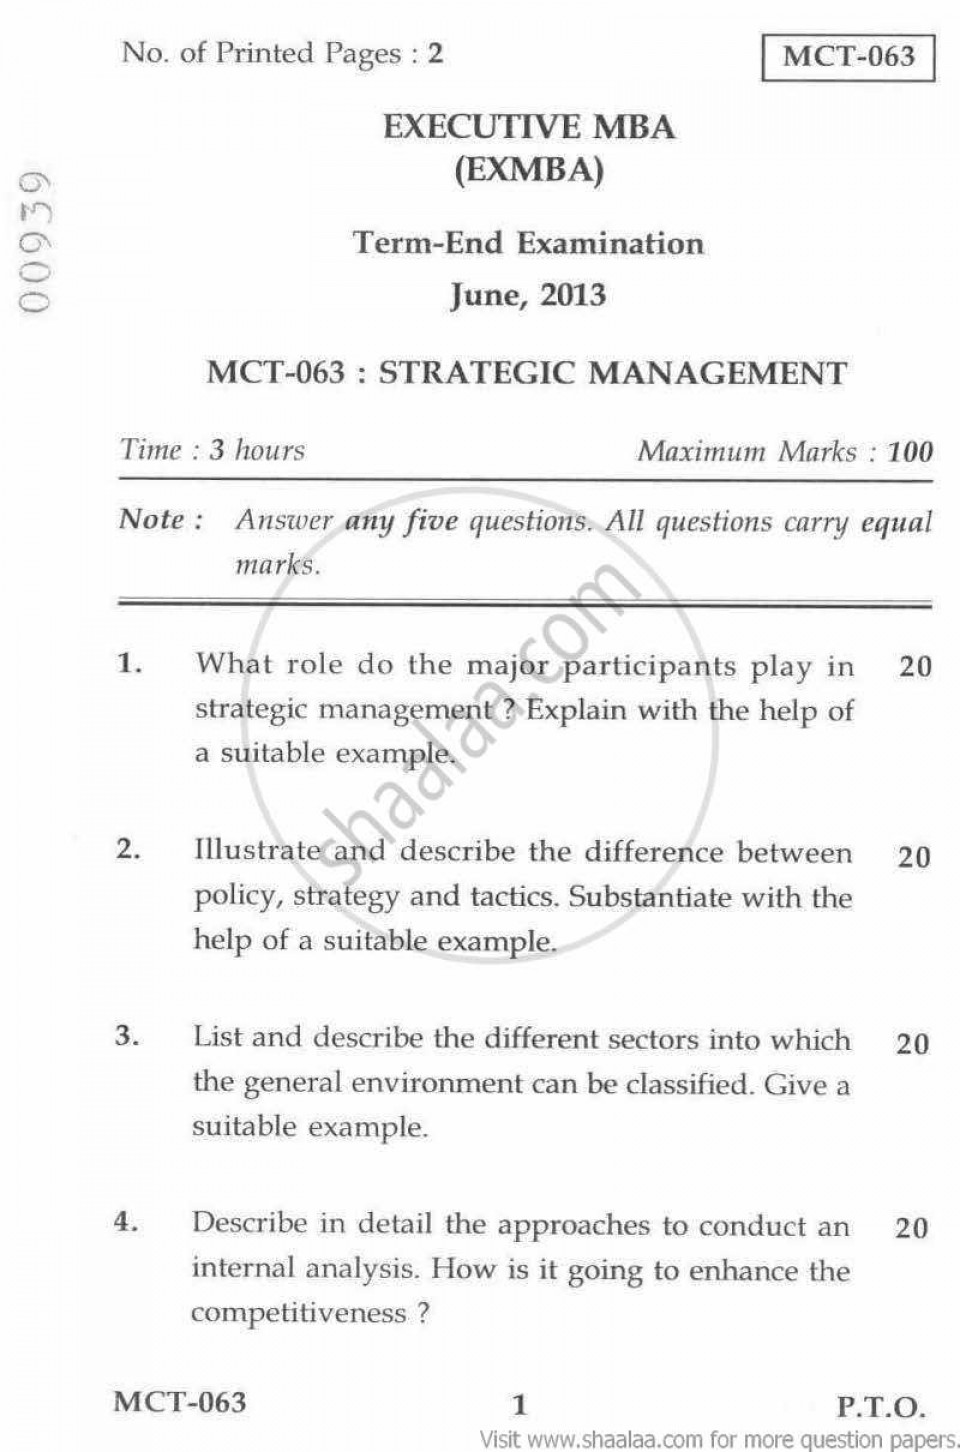 005 Essay Example Role Model Writing For Speech Spm Strategic Management Hamburger Of In Malayalam Pdf Continuous Ielts O Awesome My Father A English Is Parents Hindi Conclusion Paragraph 960